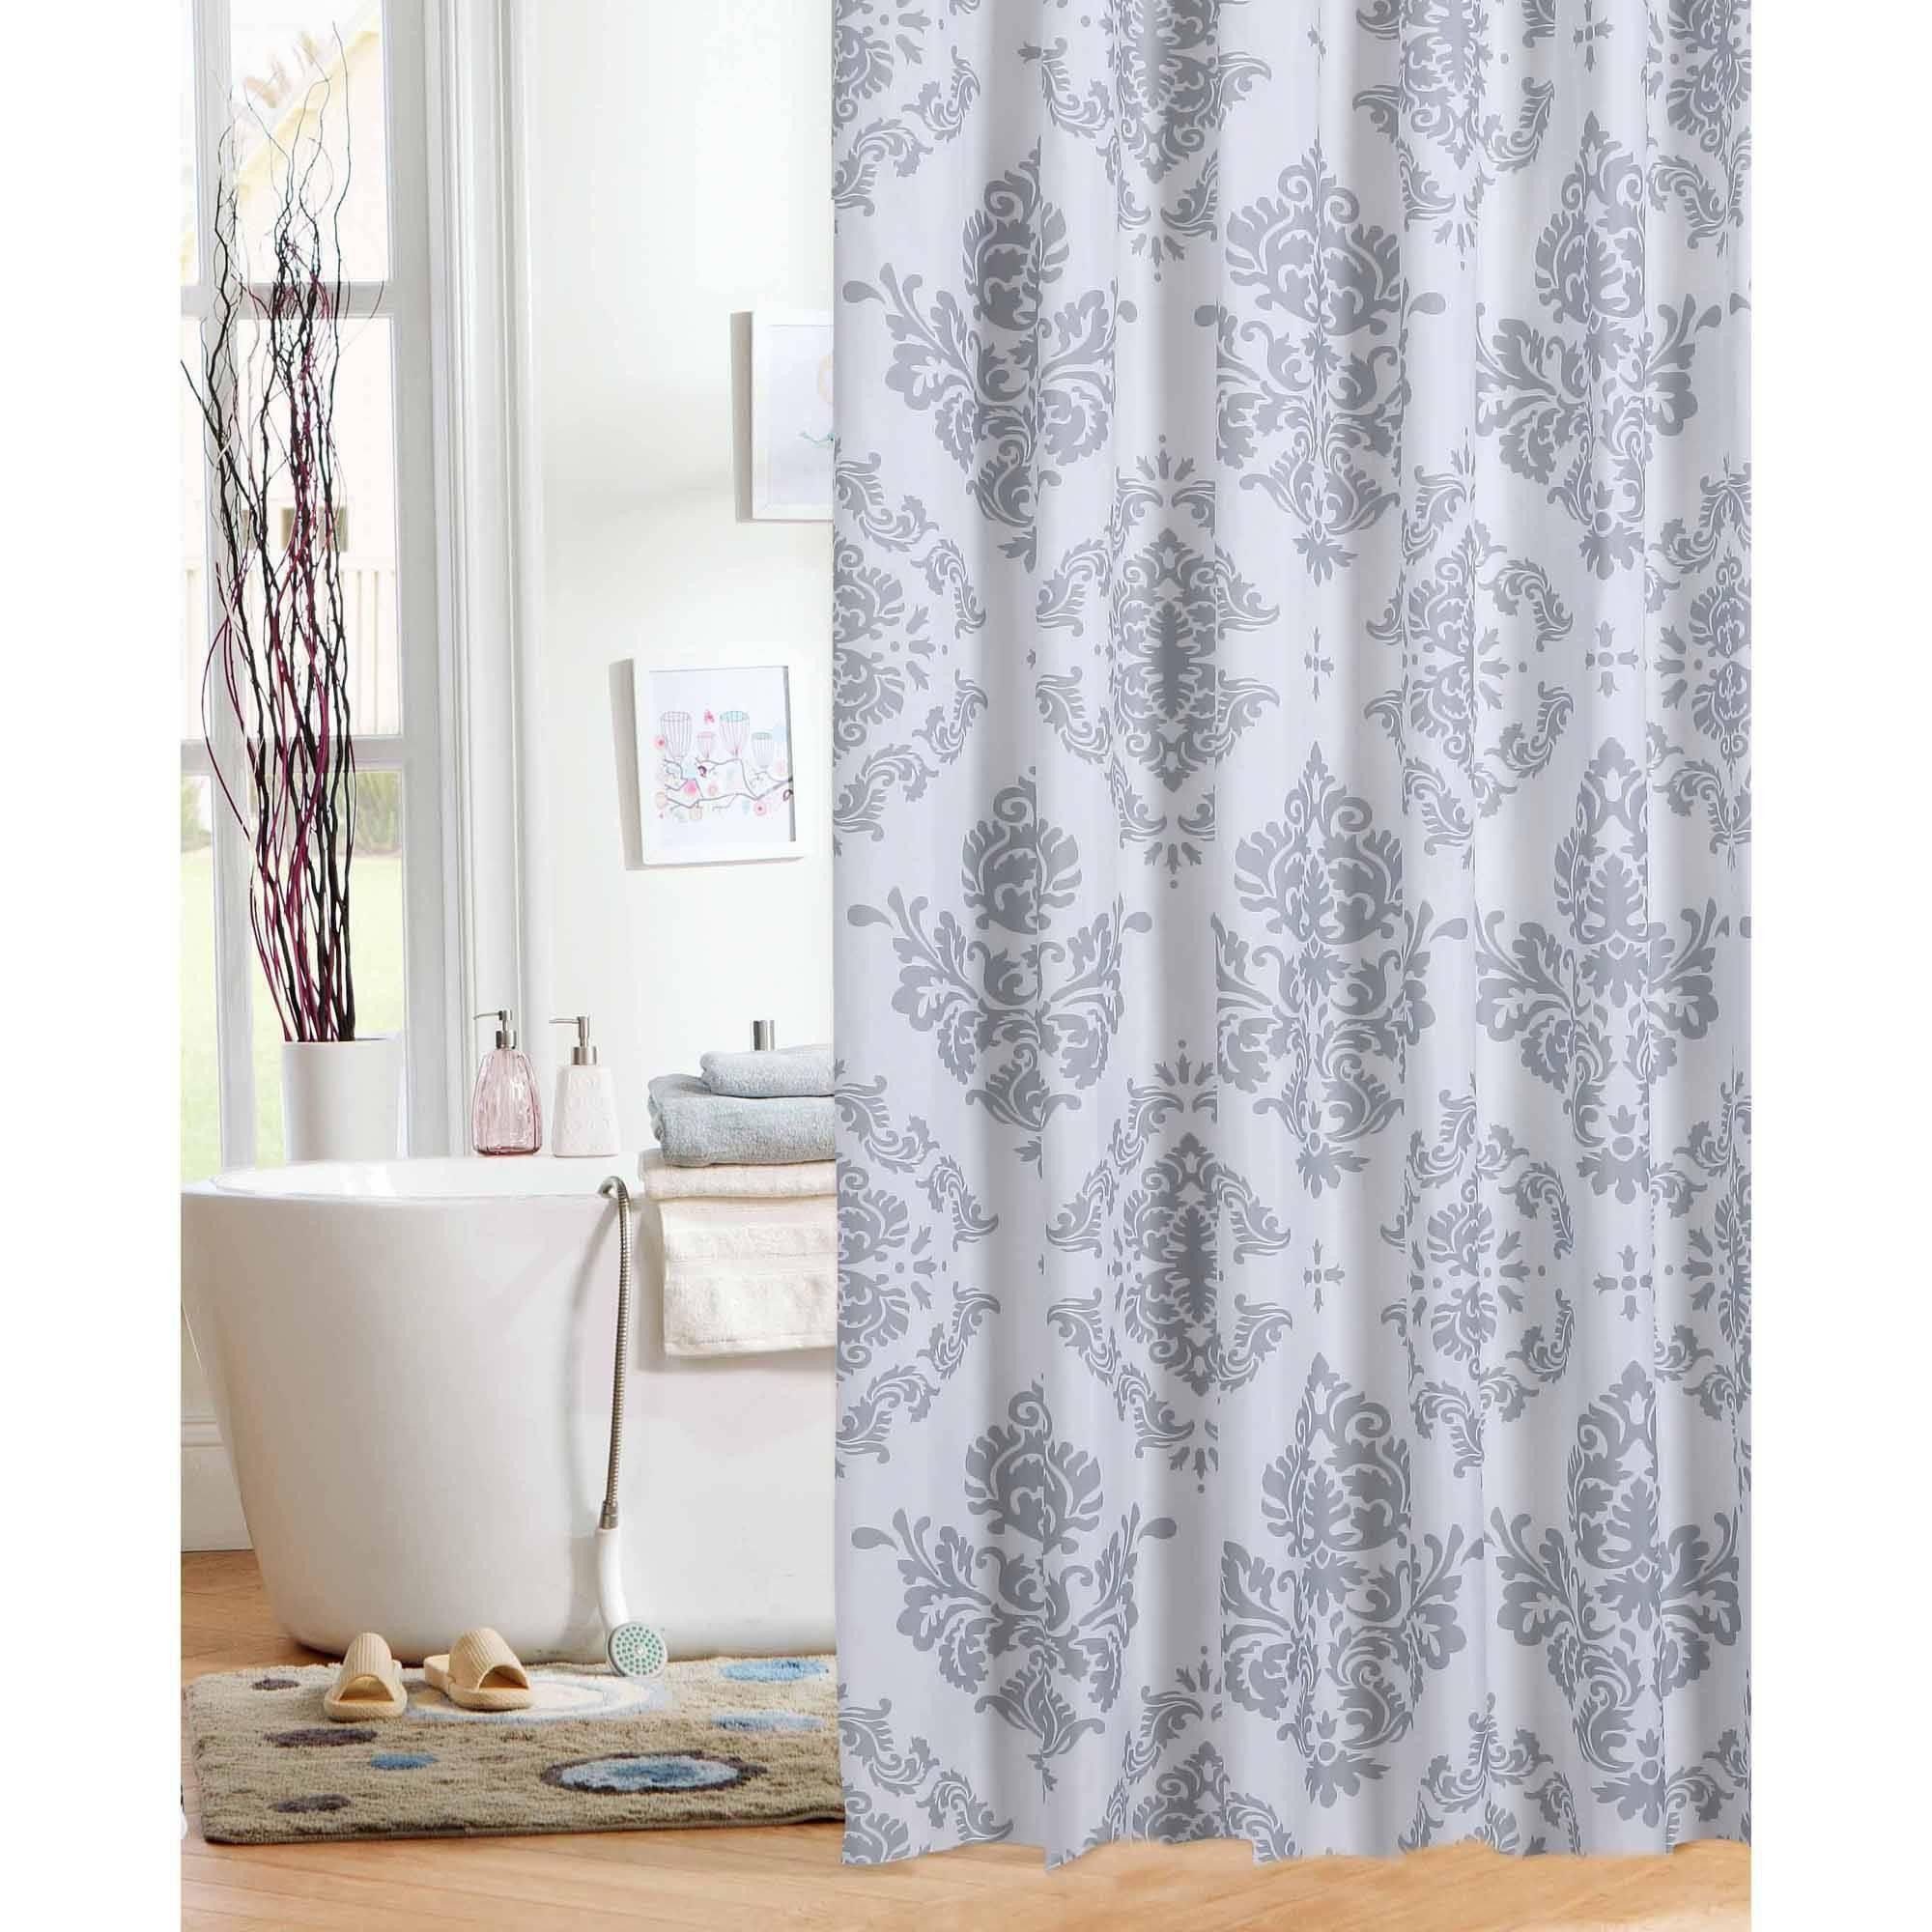 New Jeweled Shower Curtain Fabric Shower Curtains Shower